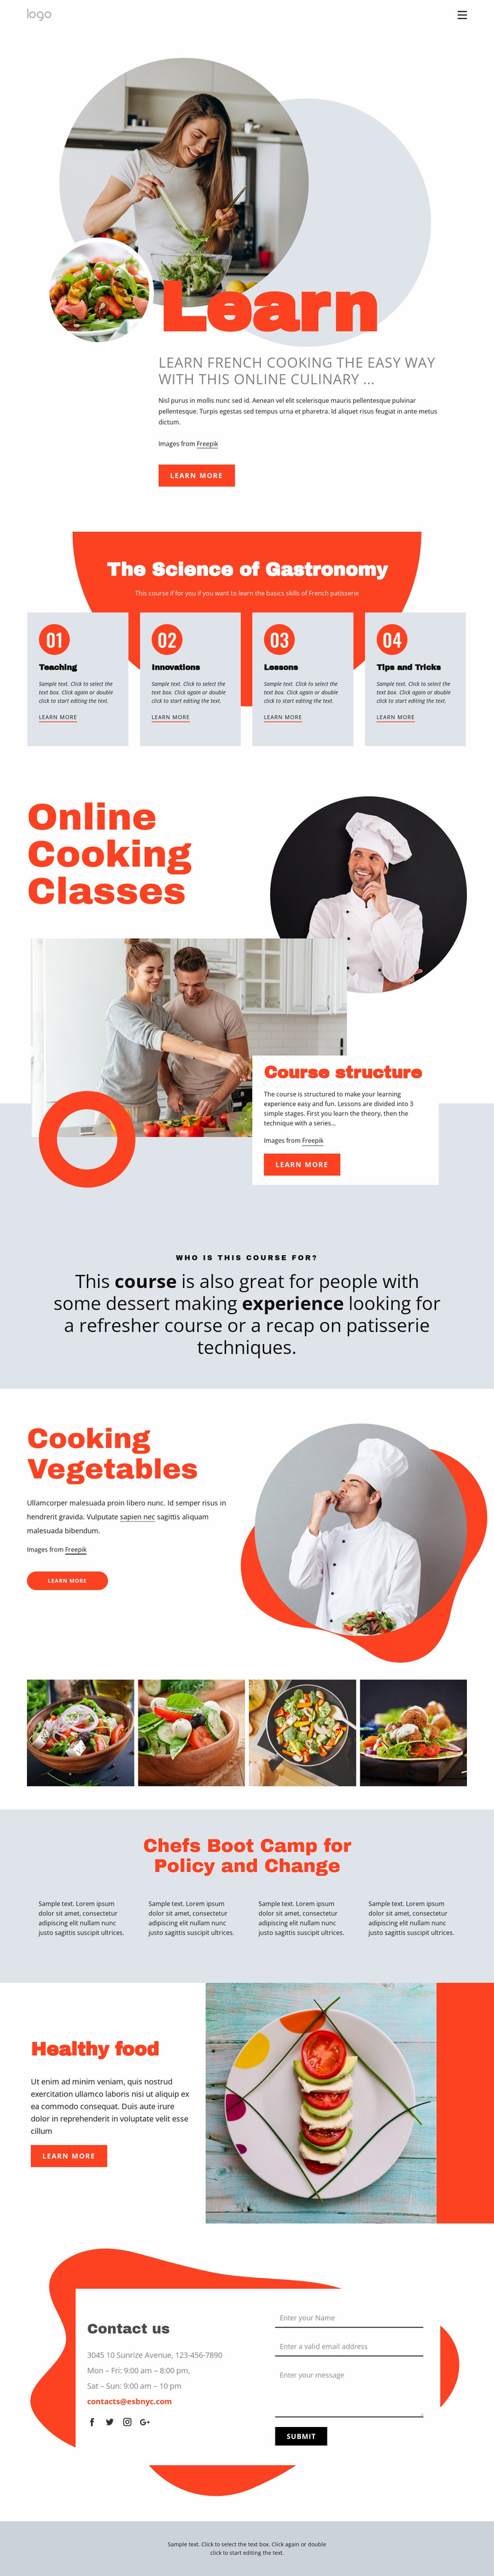 Learn cooking the easy way Website Design